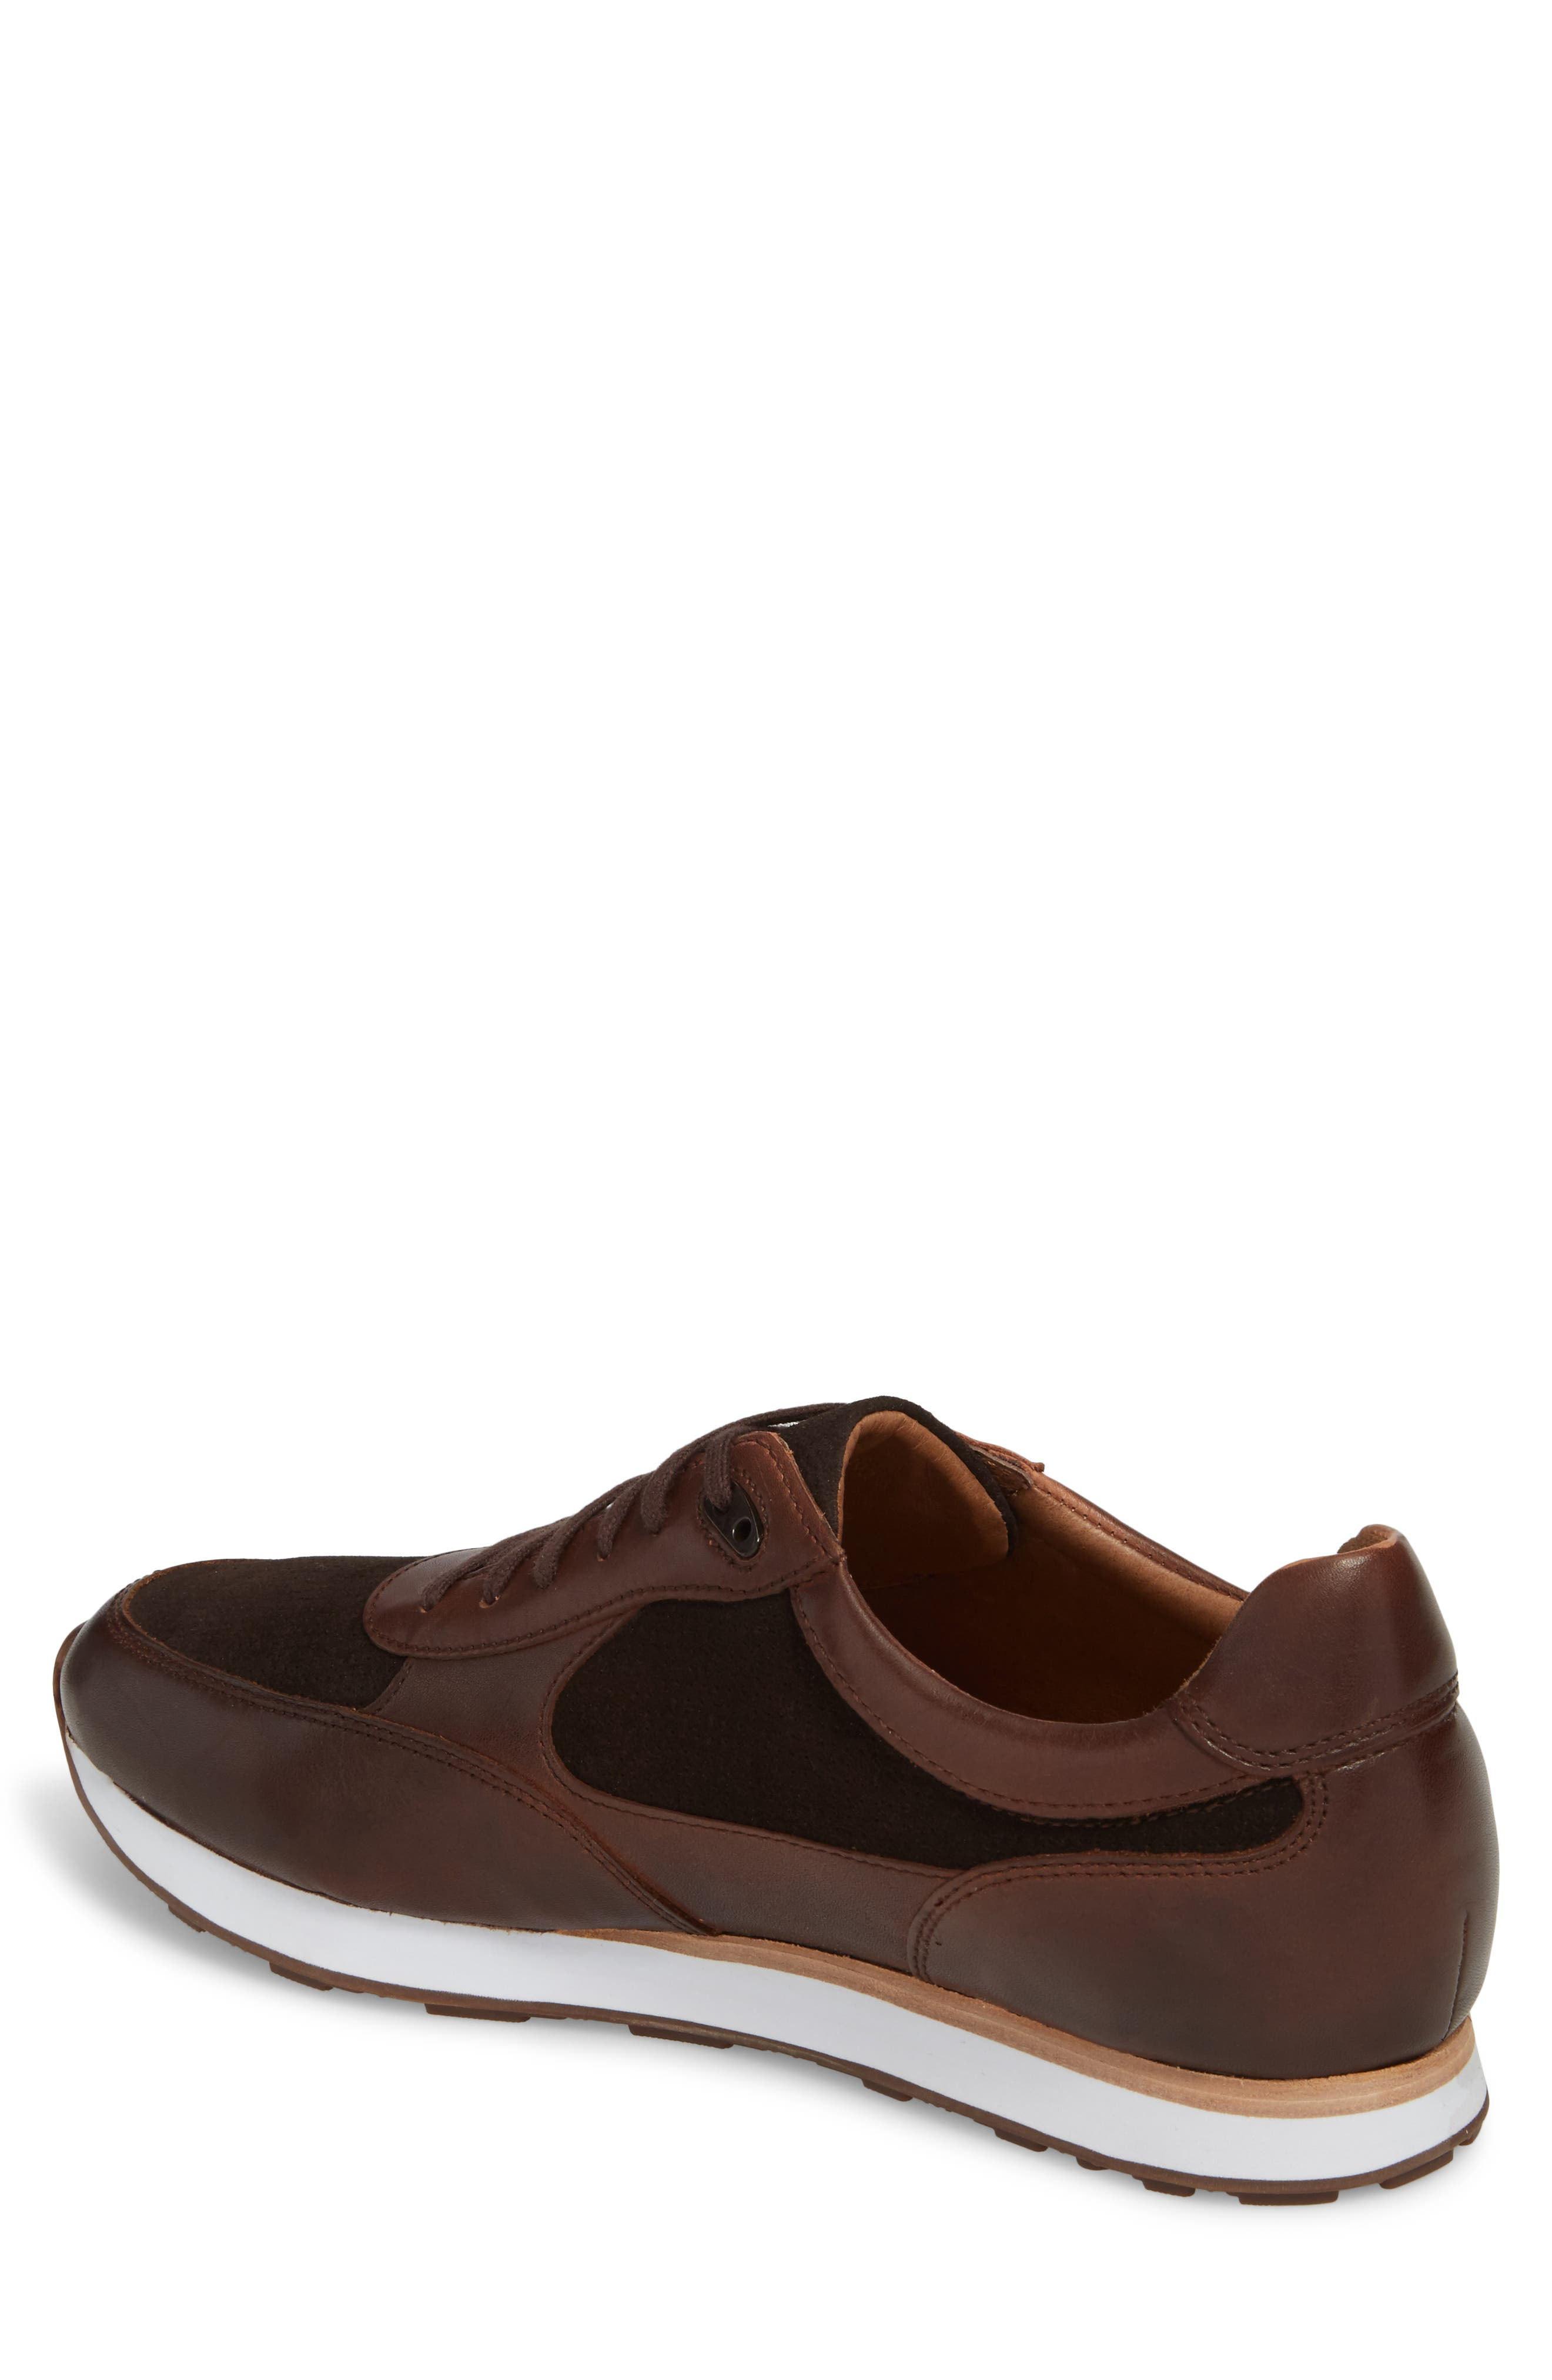 Malek Low Top Sneaker,                             Alternate thumbnail 2, color,                             Mahogany Leather/ Suede